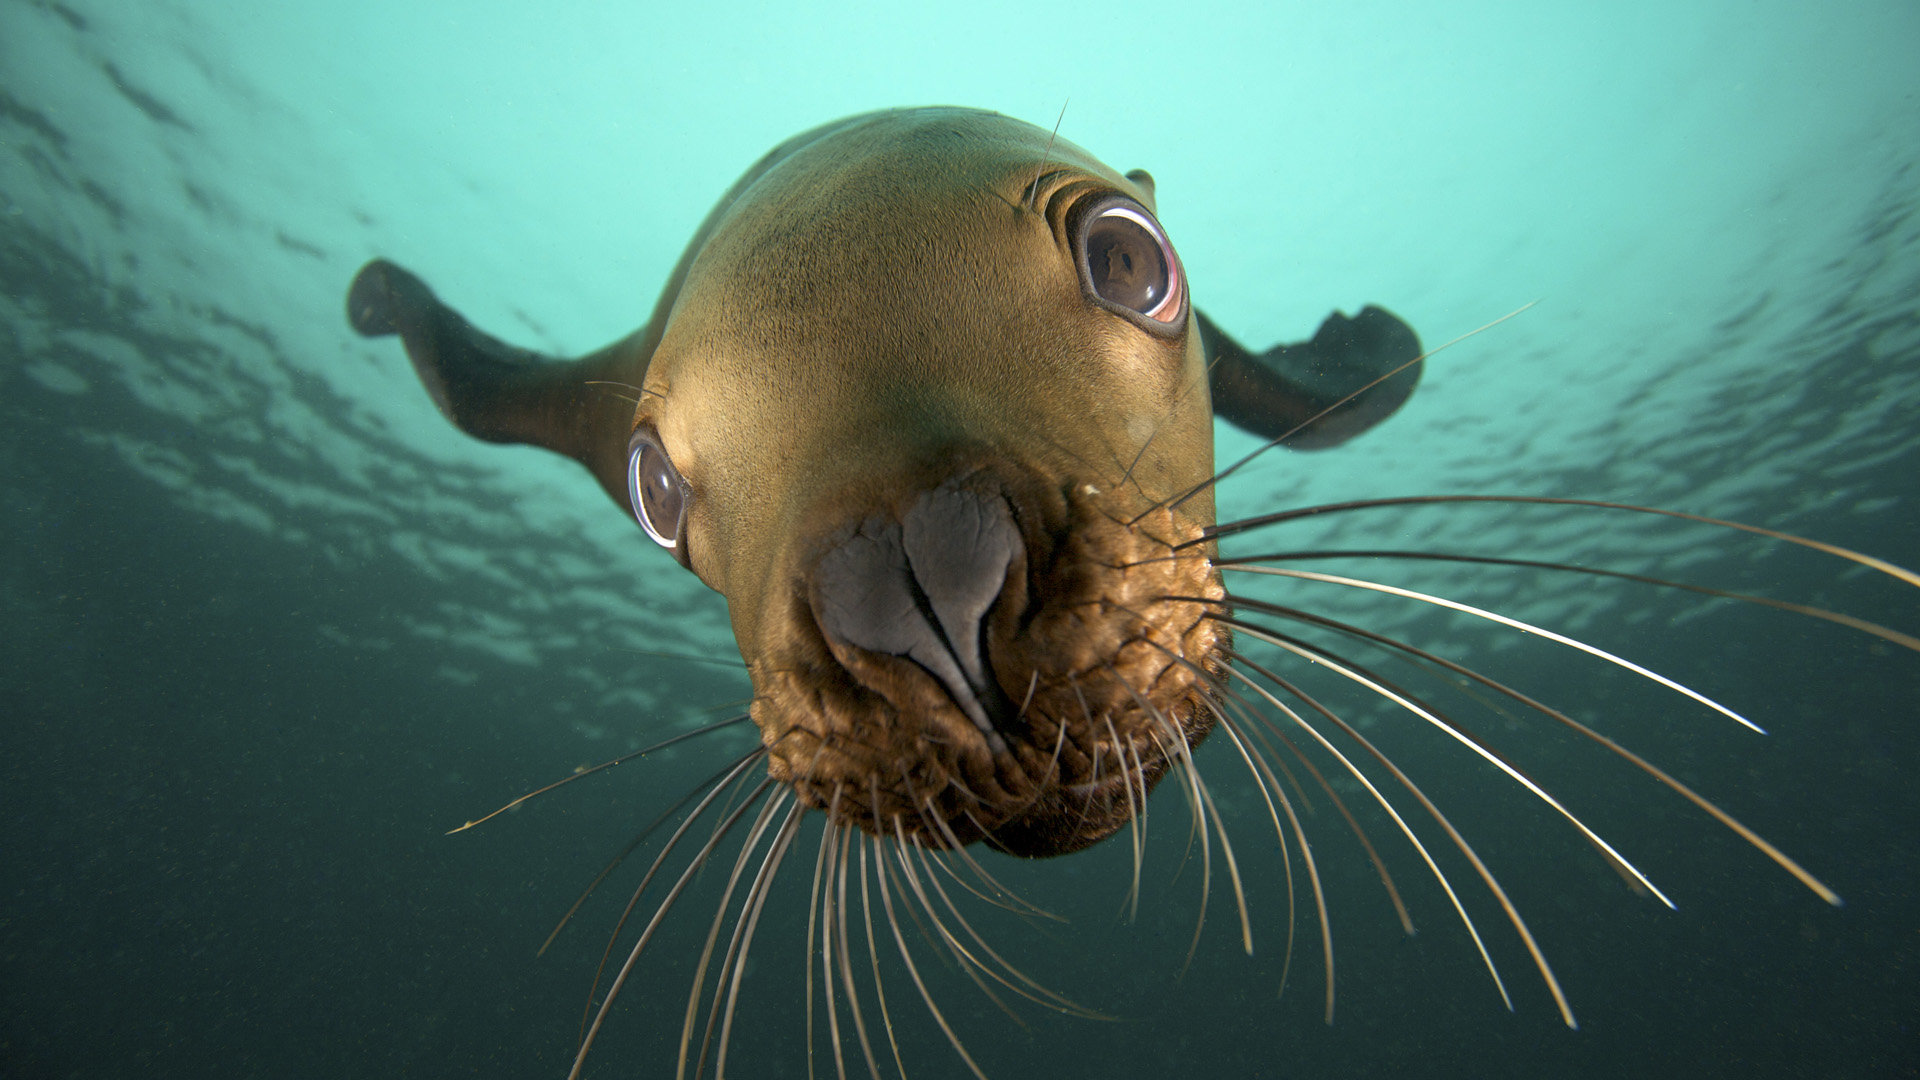 Download full hd 1920x1080 Seal PC background ID:183403 for free